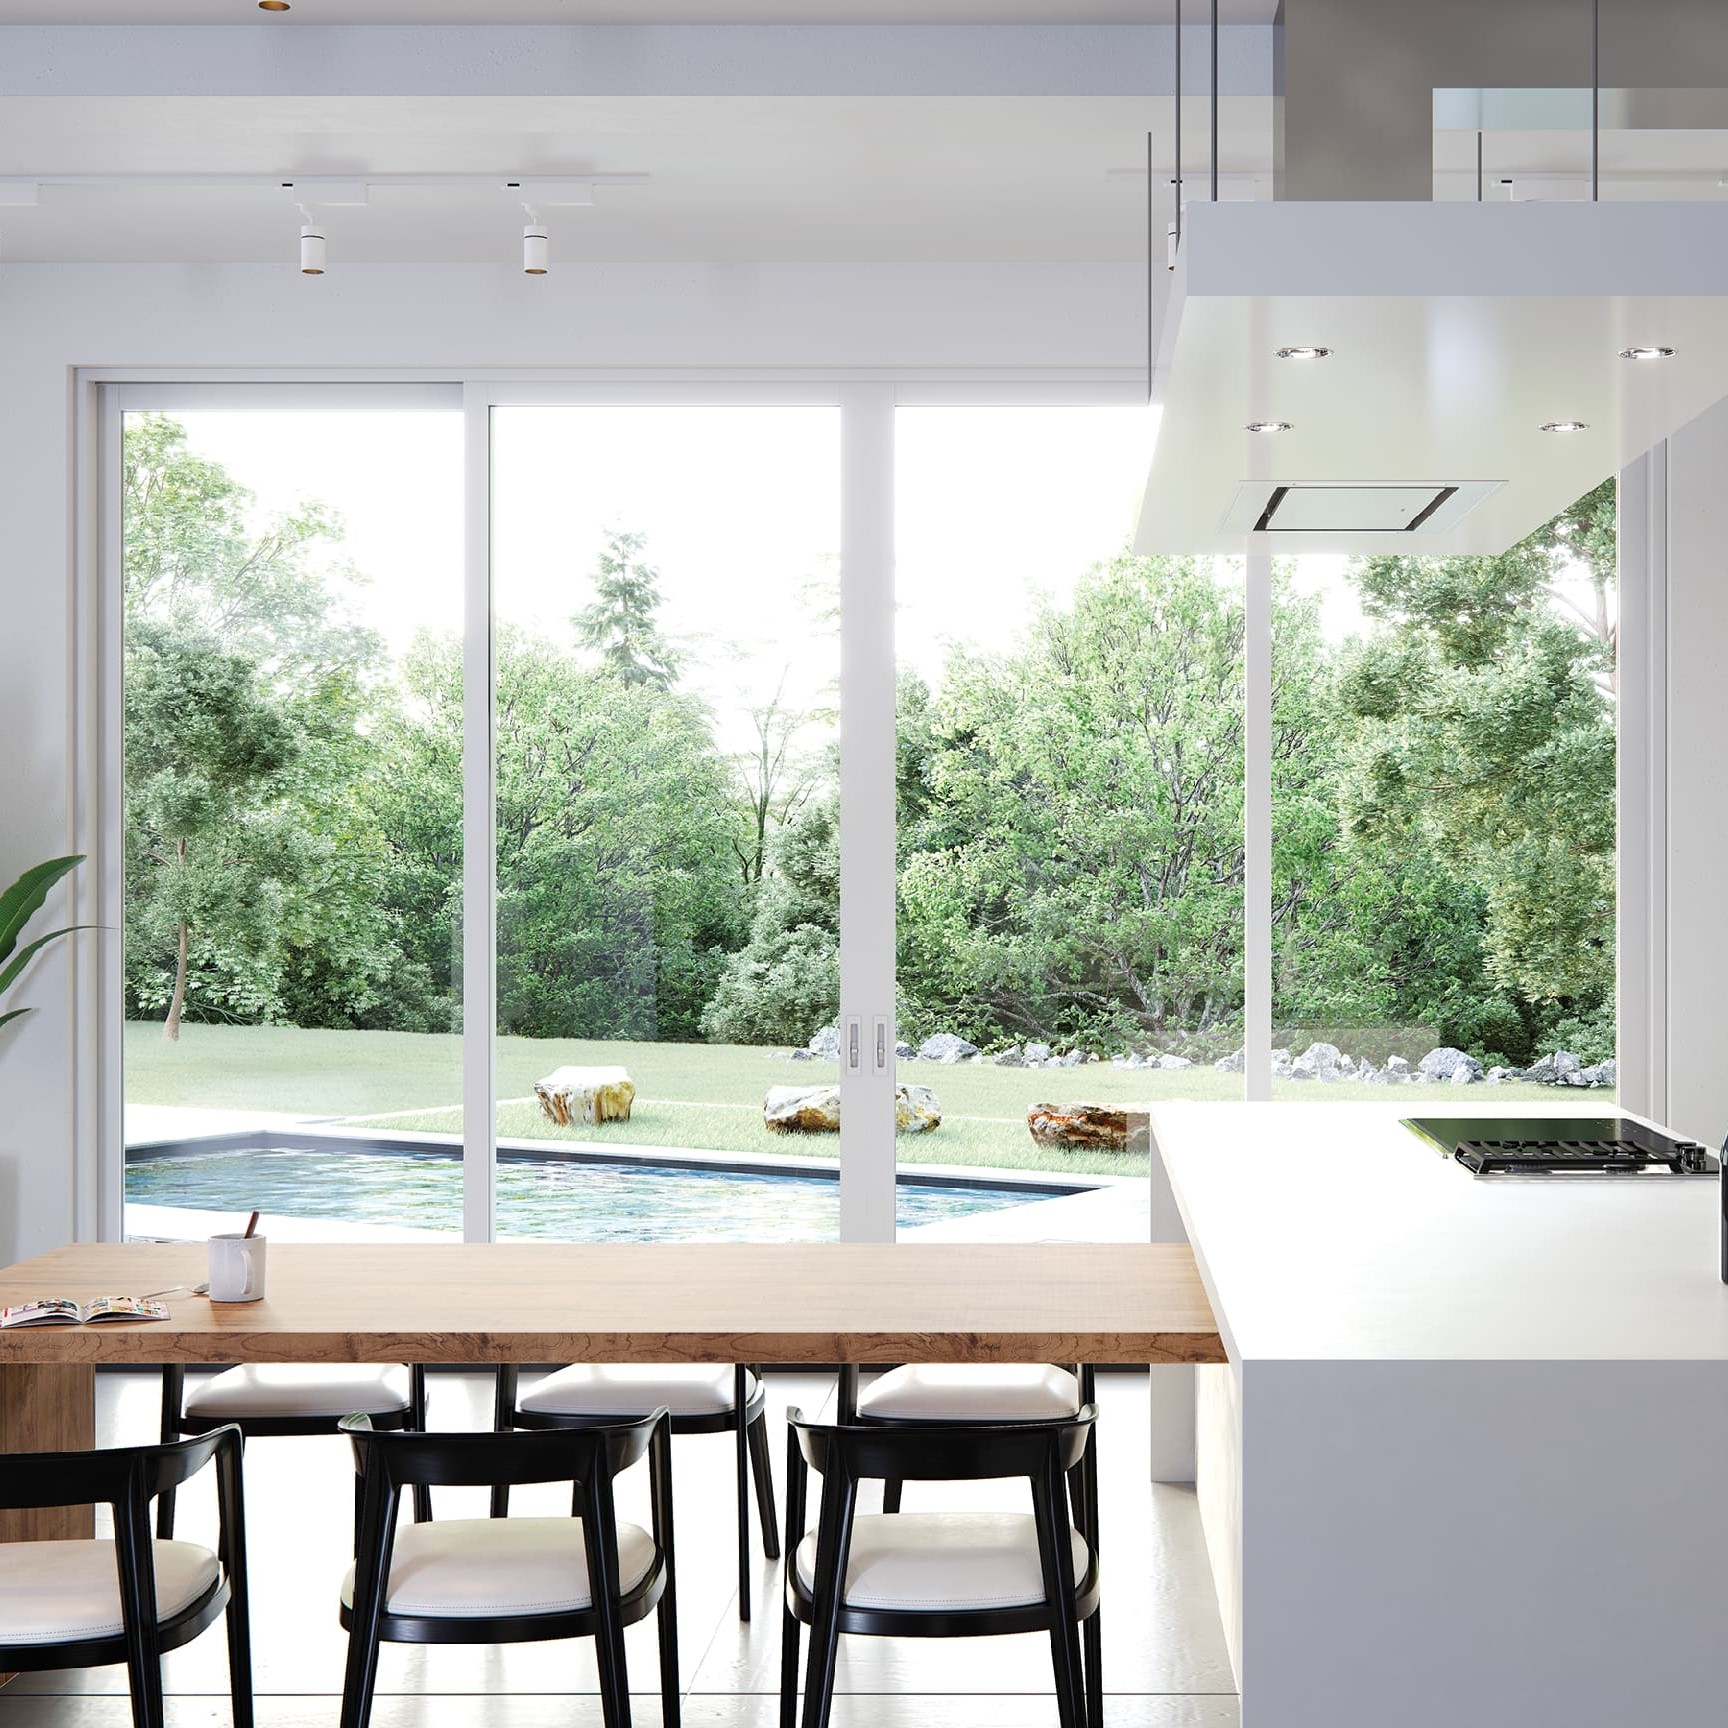 Sliding glass patio door in dining room leading to backyard